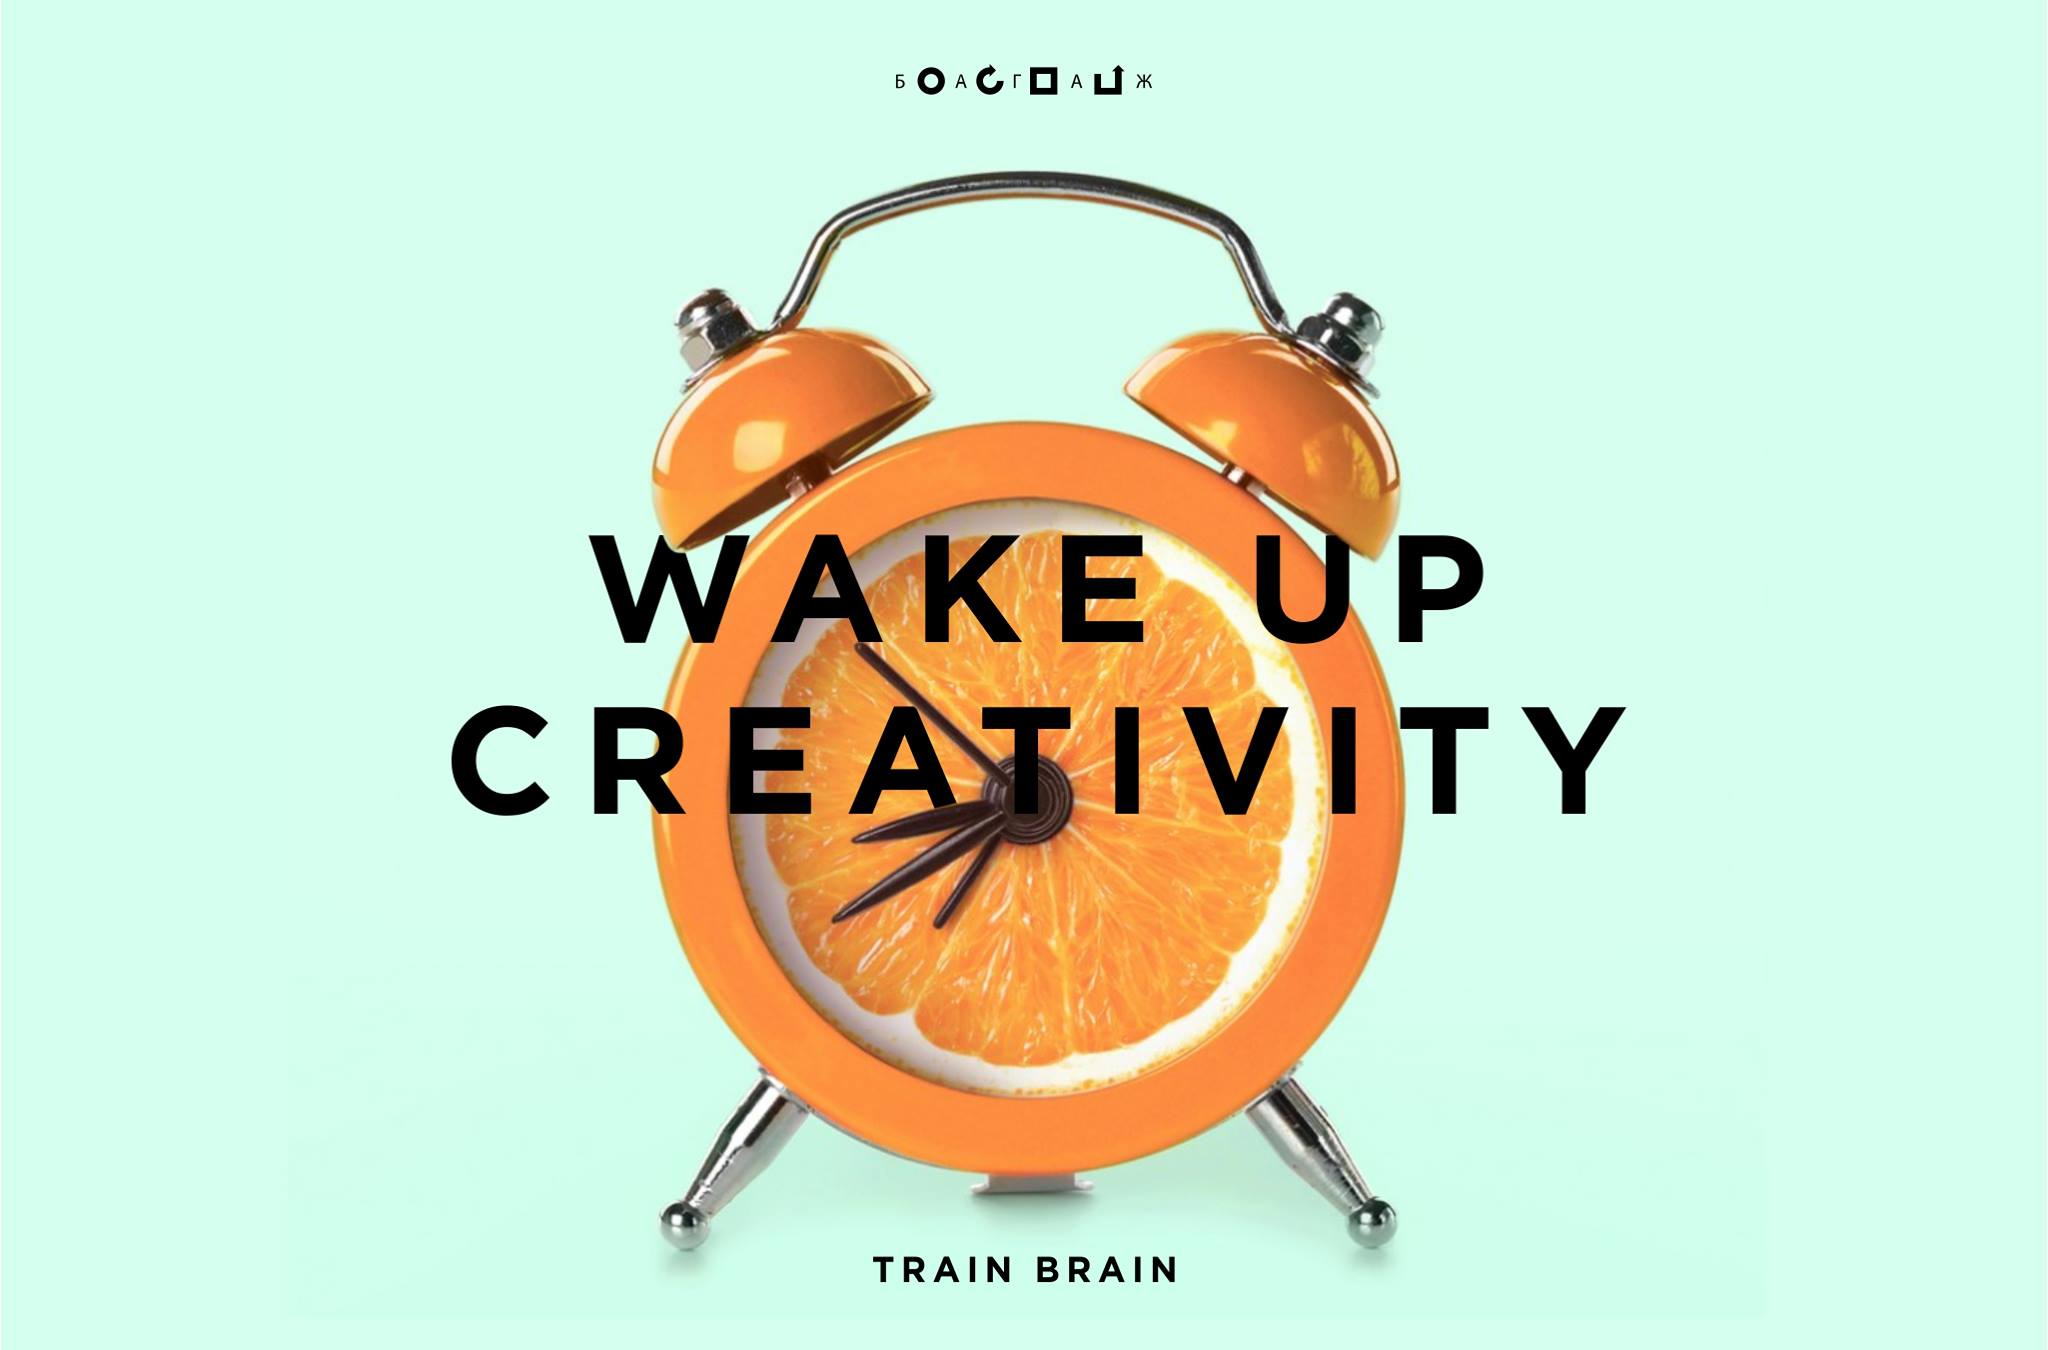 07_МАЙ_WAKE UP CREATIVITY